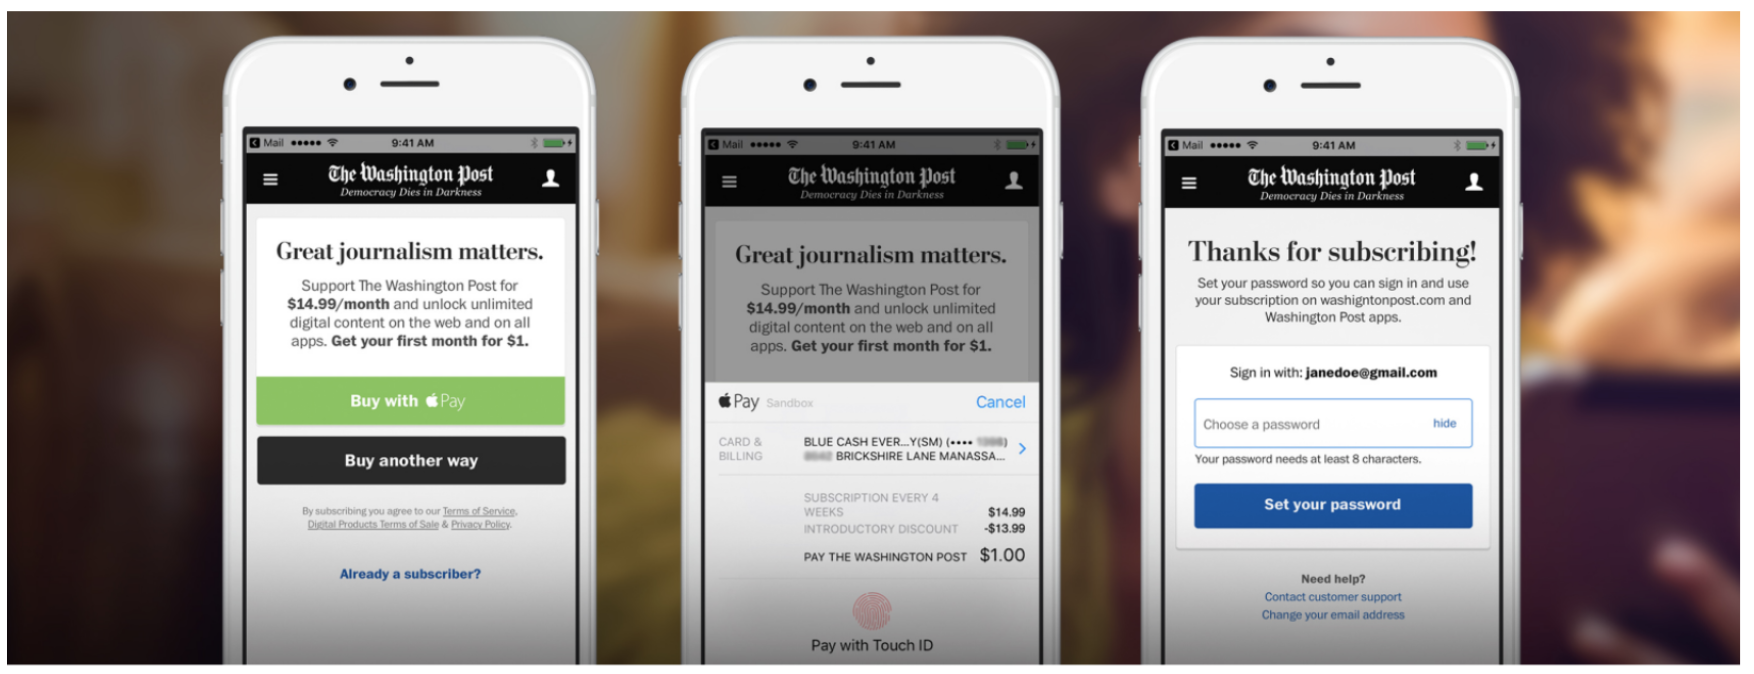 The Washington Post 3-step payment process on mobile